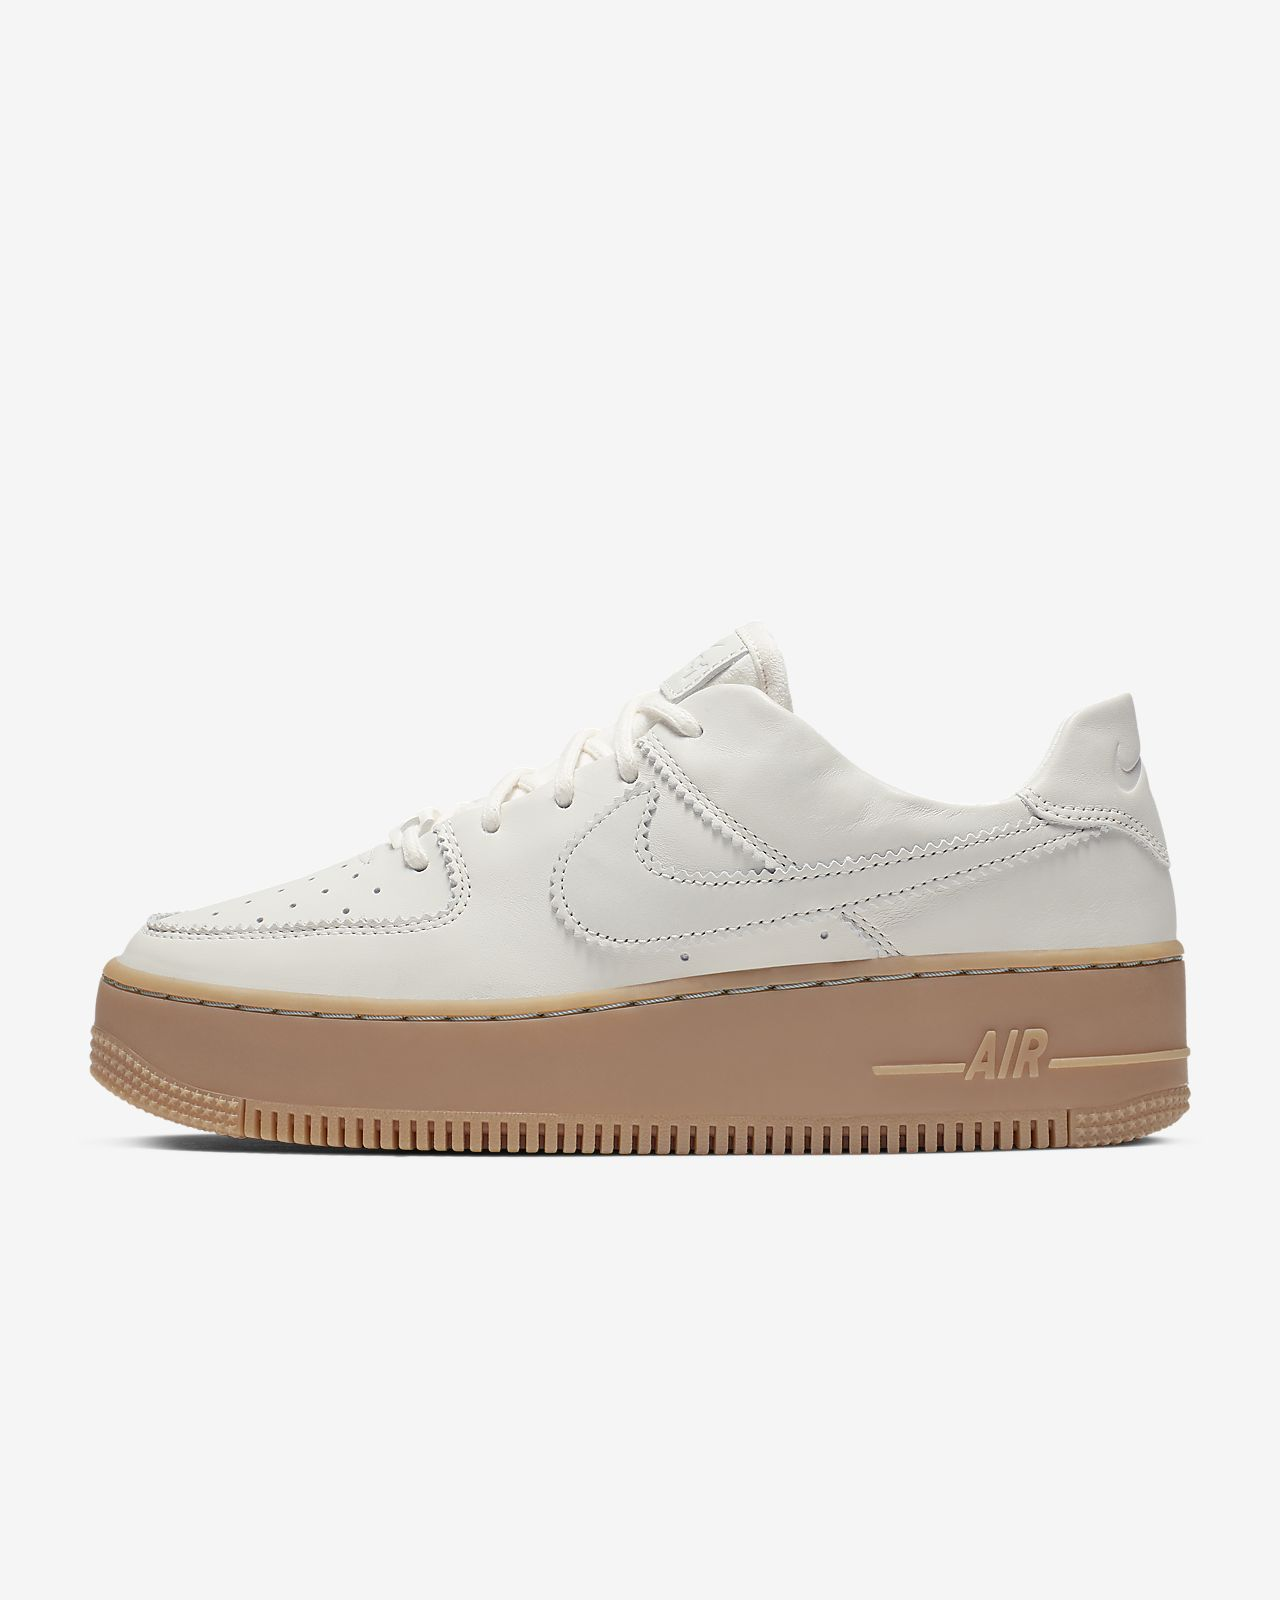 684e3db31a Nike Air Force 1 Sage Low LX Women's Shoe. Nike.com